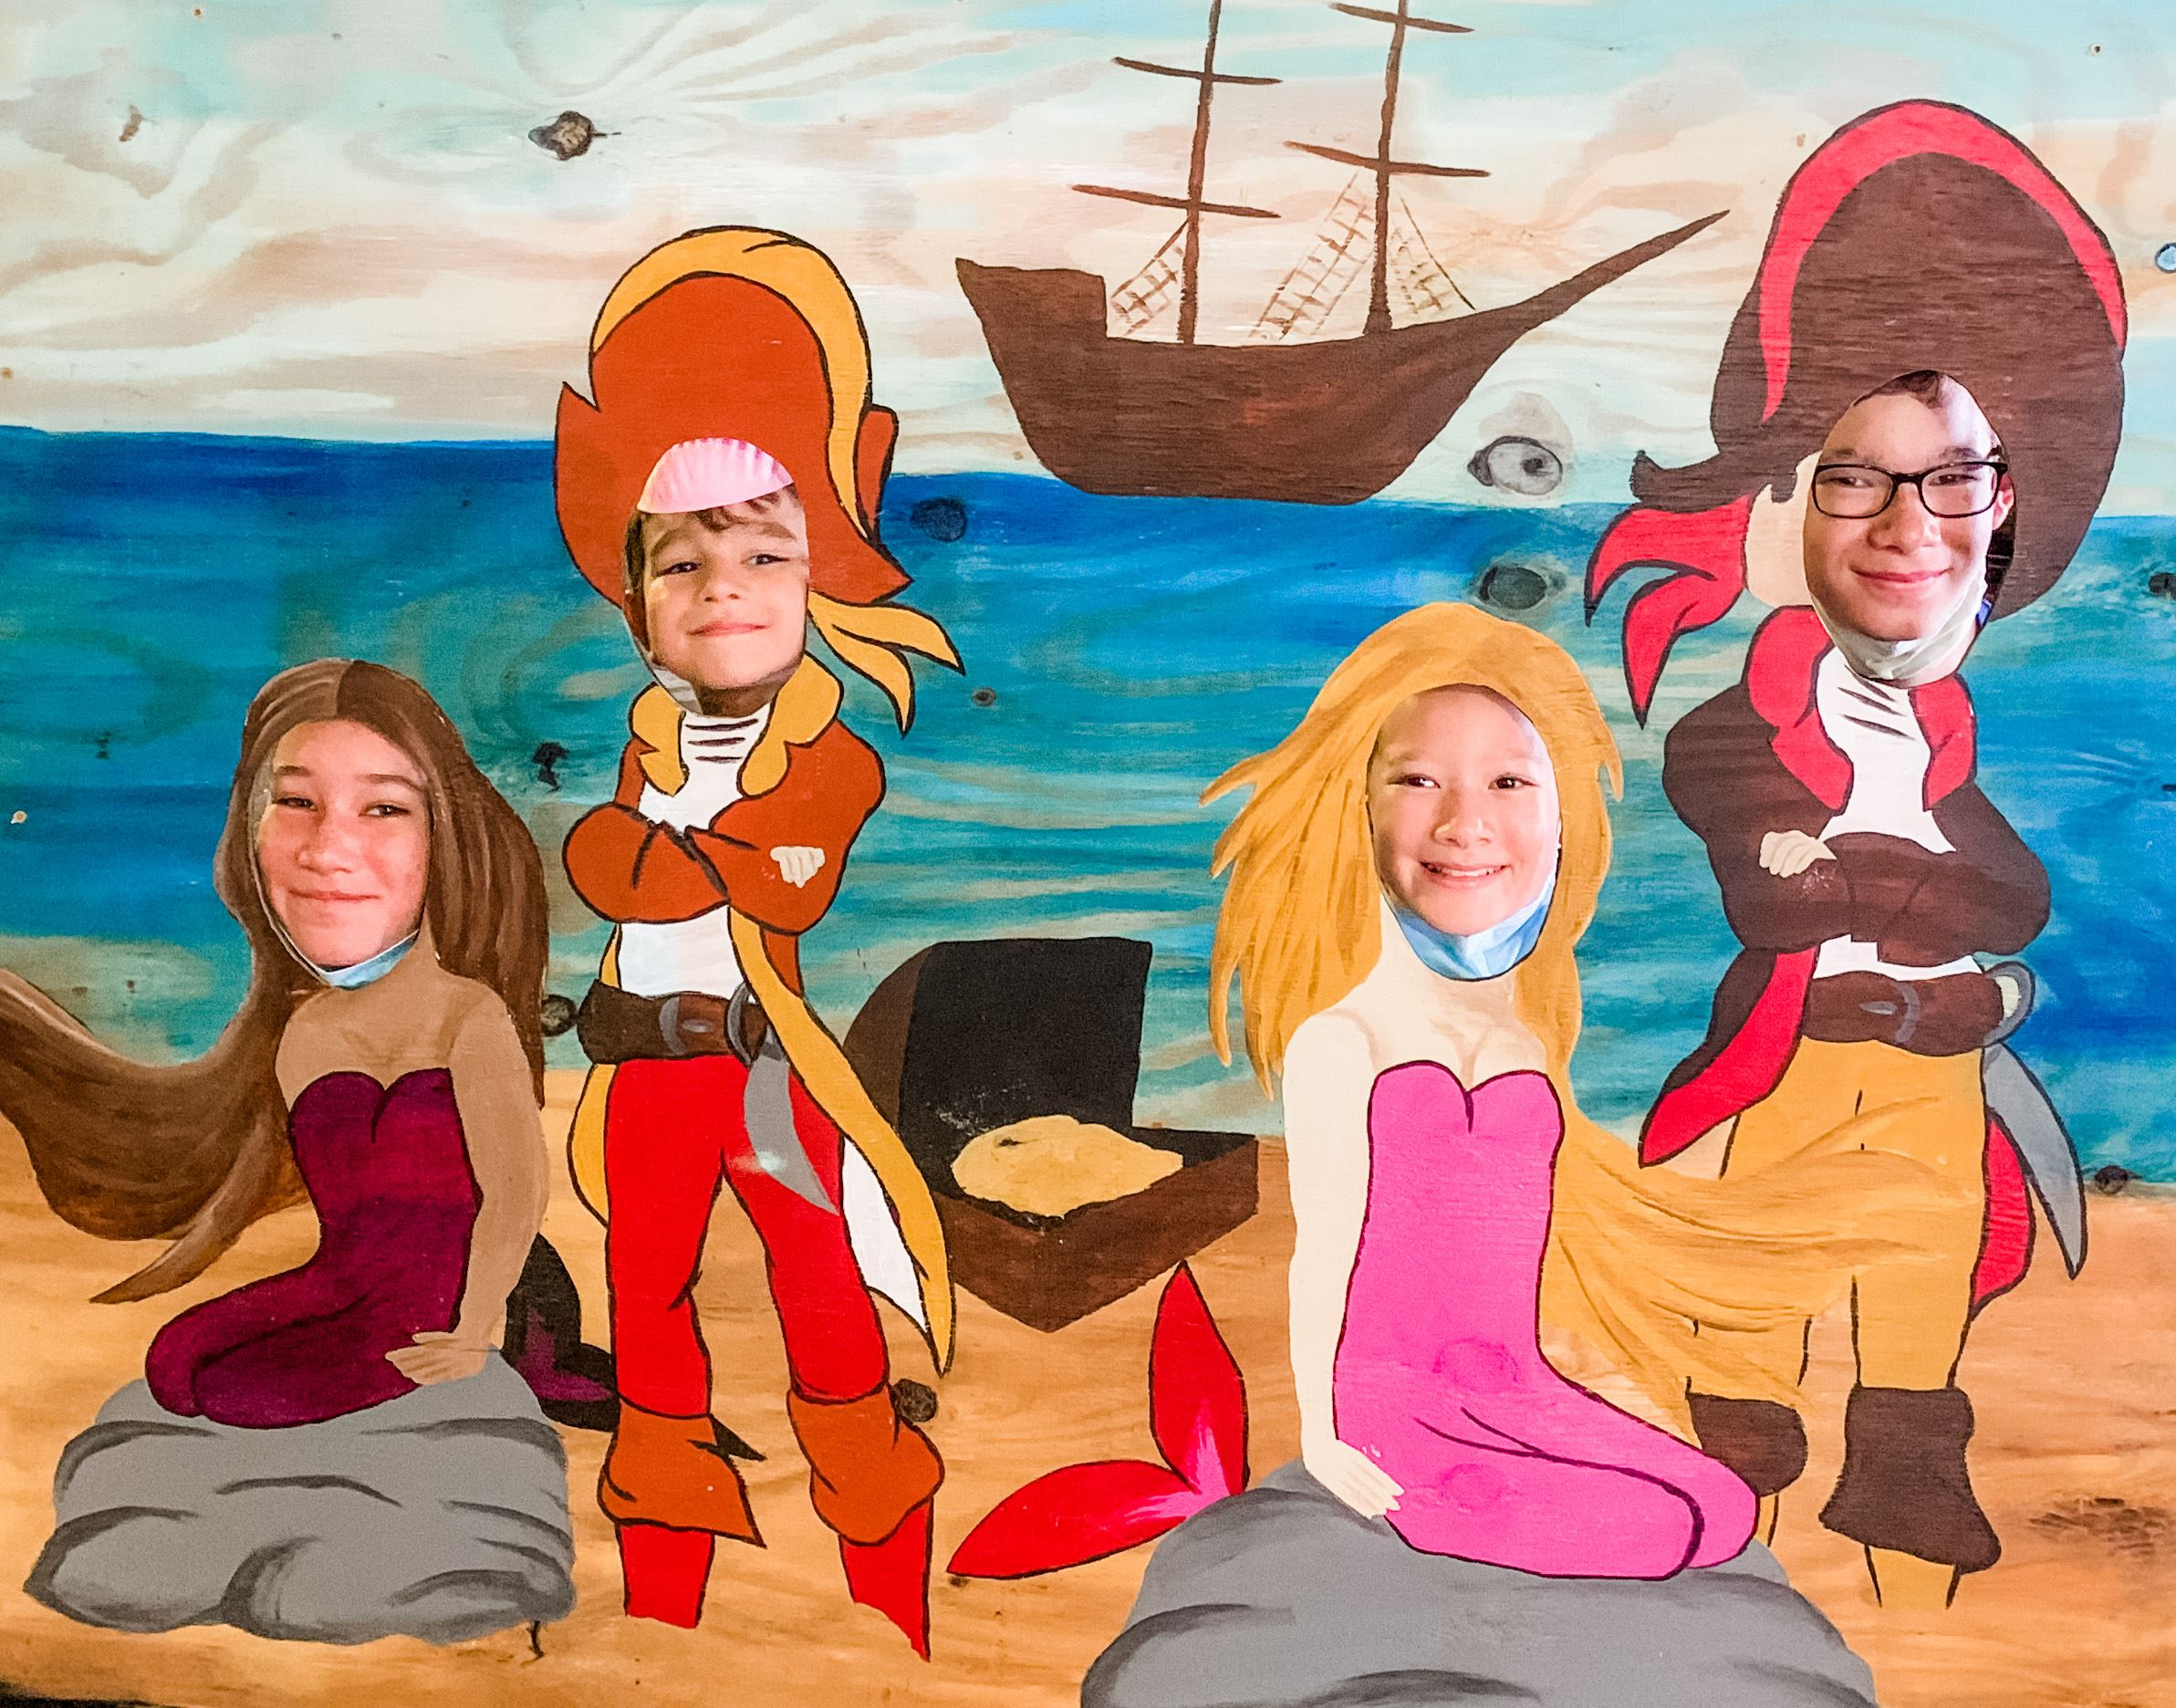 Pirate ship cutout with family posing